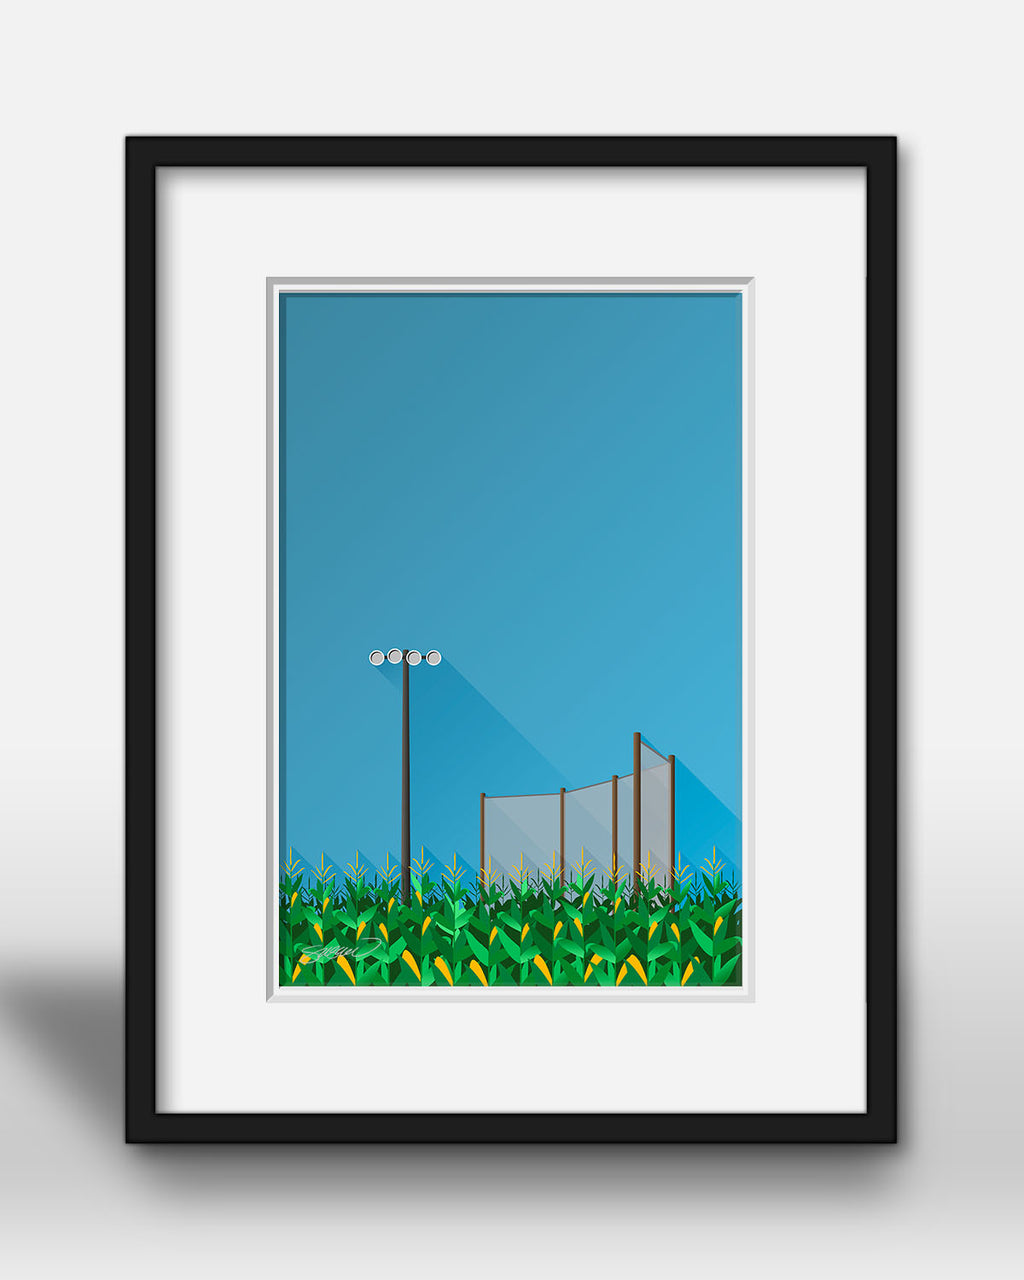 Minimalist Field Of Dreams - Sports Movies - S. Preston